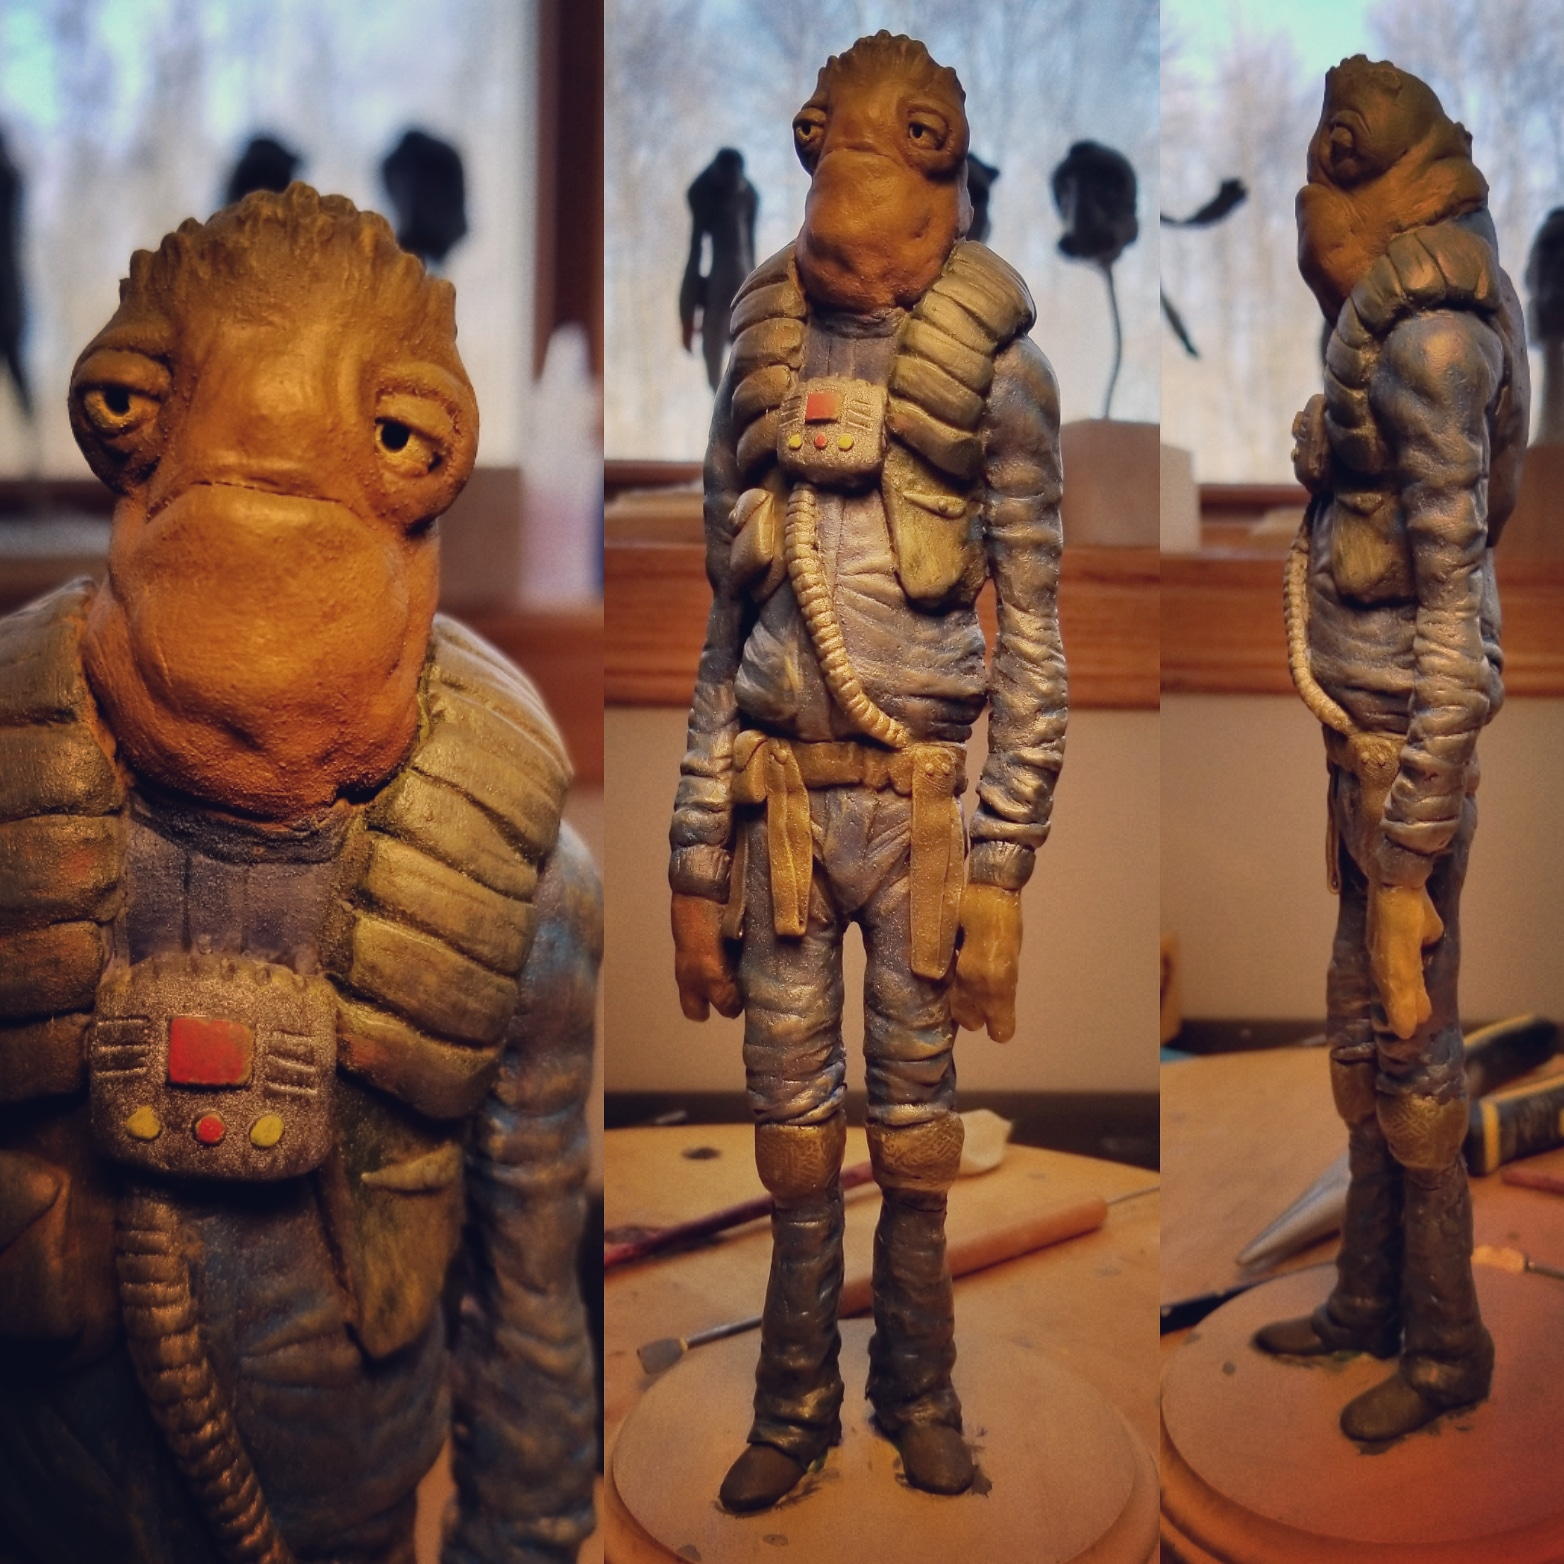 I made this sculpt two years ago, going to work on some more this year while we wait for IX!